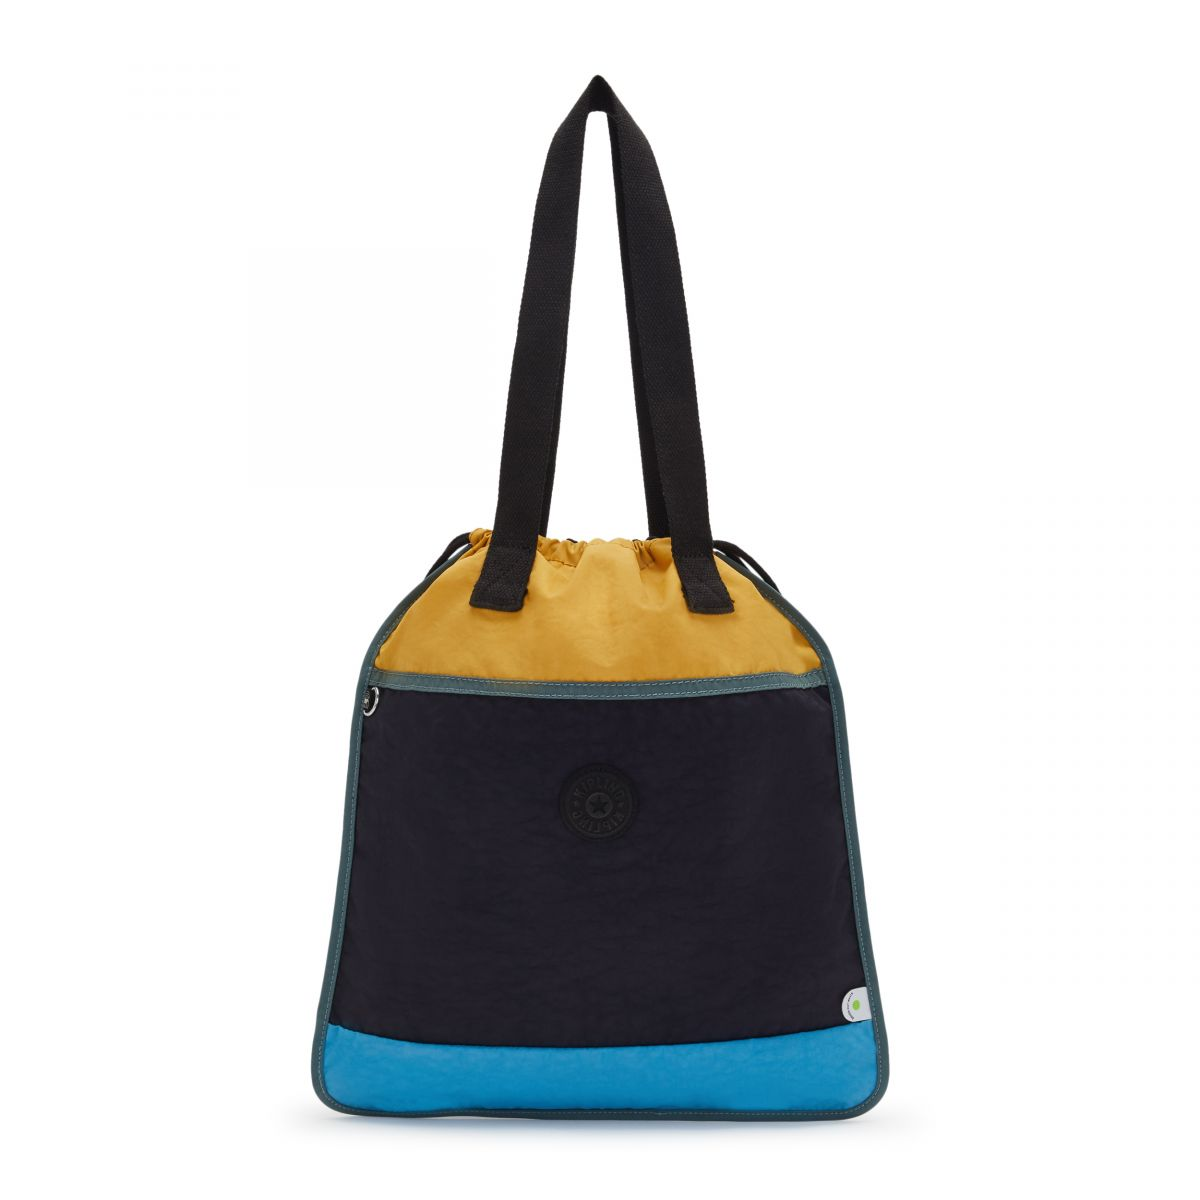 NEW HIPHURRAY BAGS by Kipling - Front view